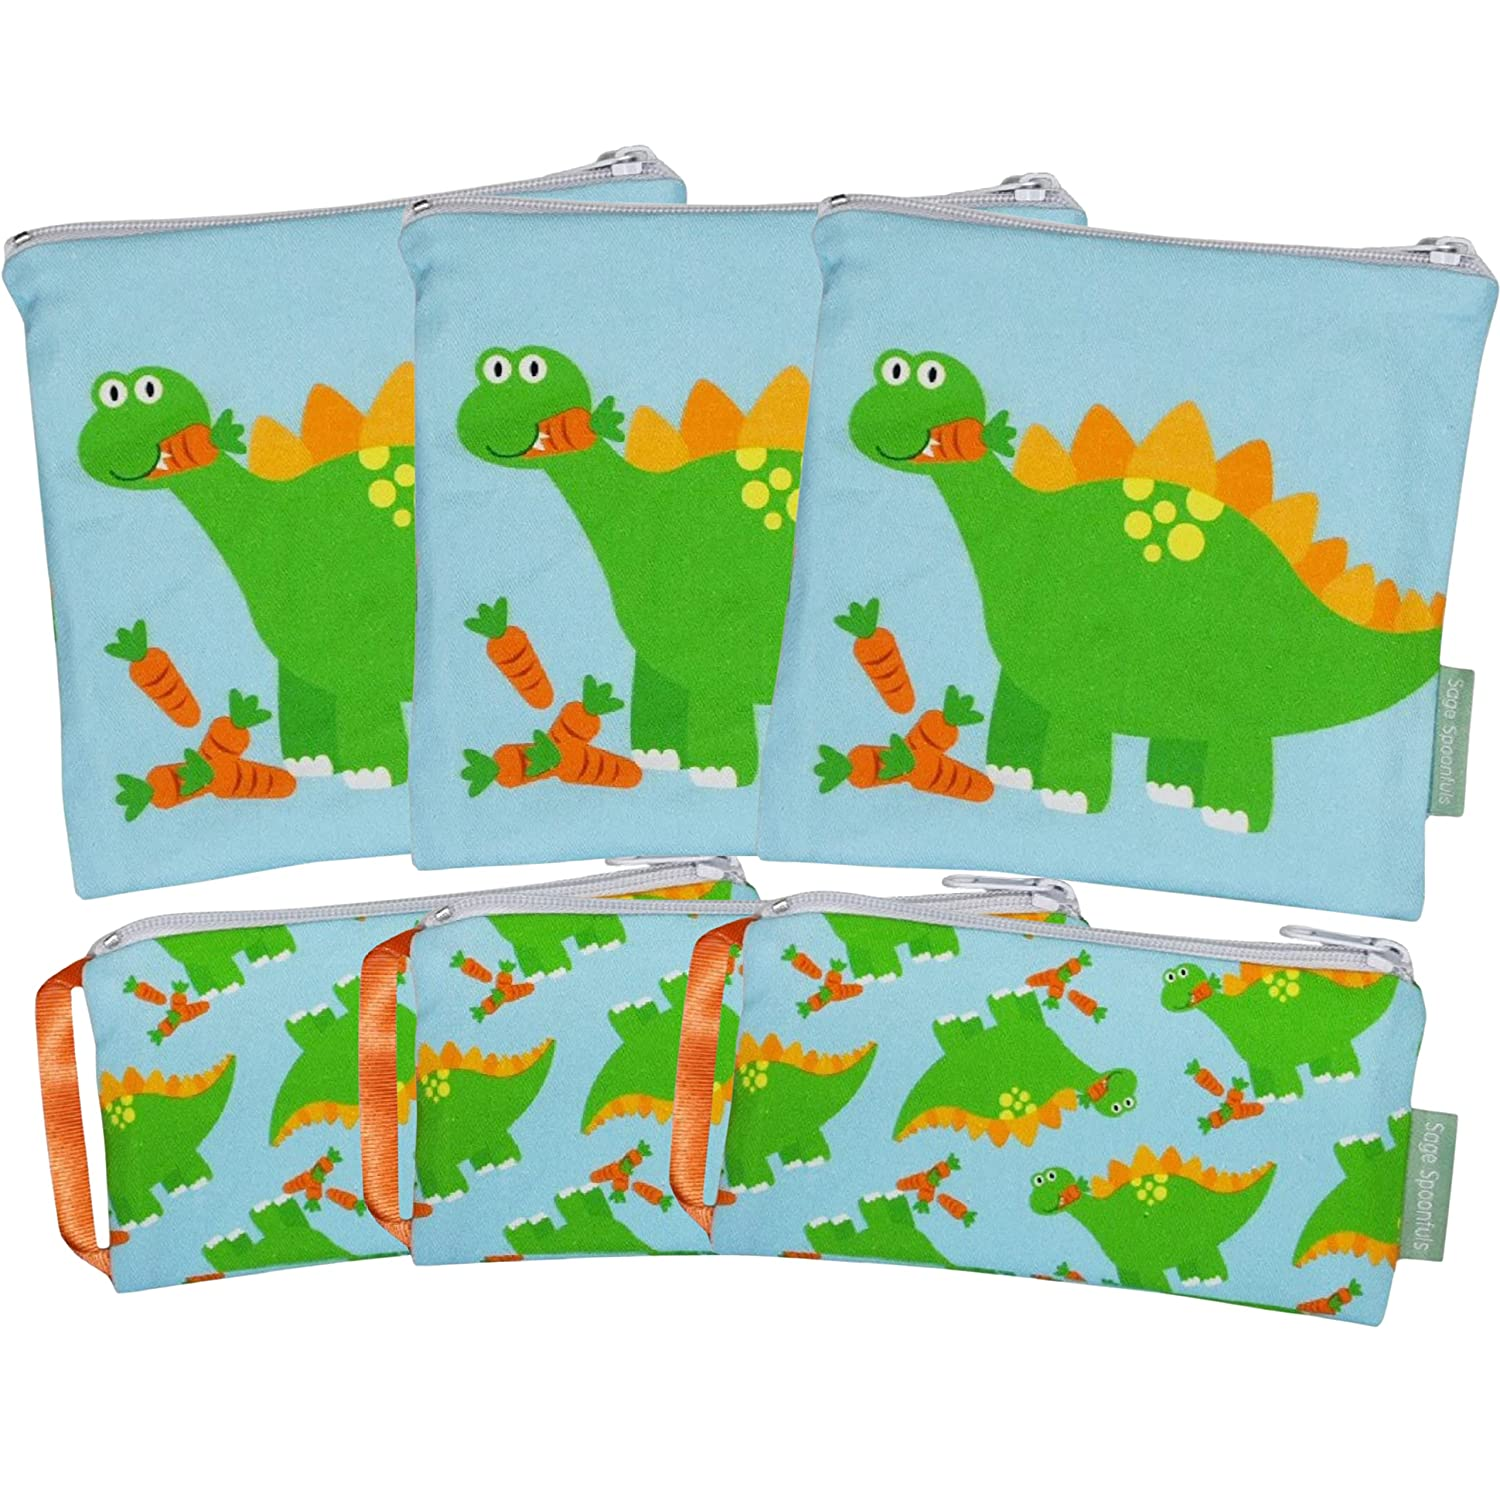 Sage Spoonfuls Reusable Snack and Lunch Bag Set - 3 Sets Of Sandwich and Snack Bag 2-Packs - Machine Washable, Cotton Exterior, Free of BPA, Phthalate, Lead and PVC - Dino - 6 Pieces